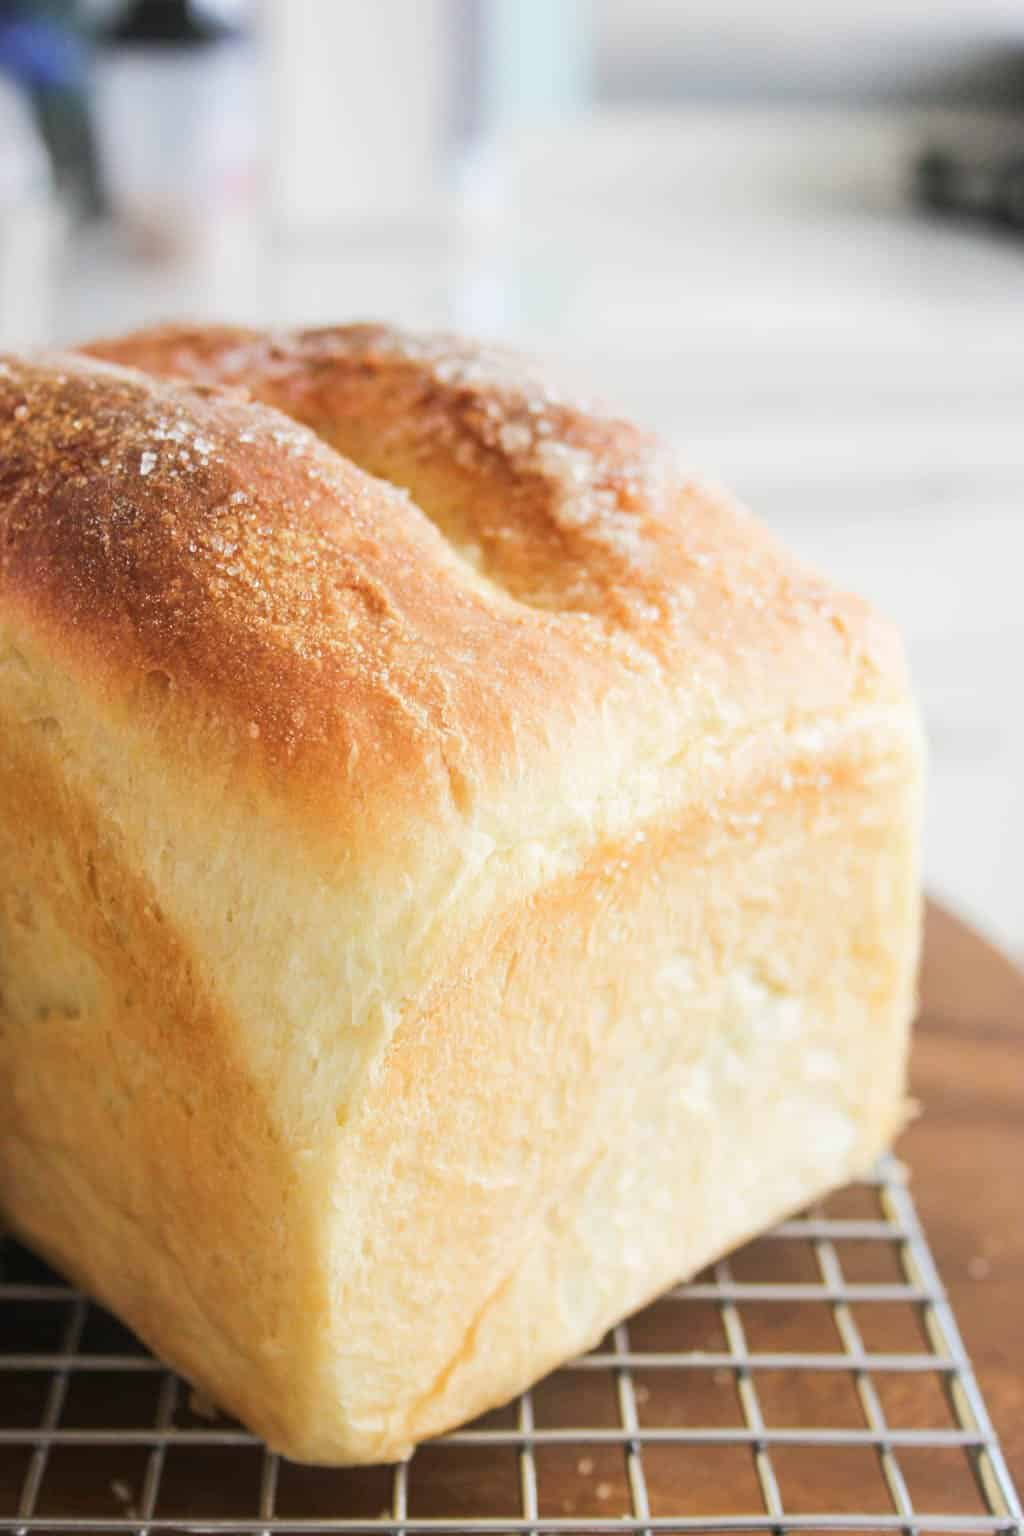 English cottage bread loaf, fresh baked out of the oven